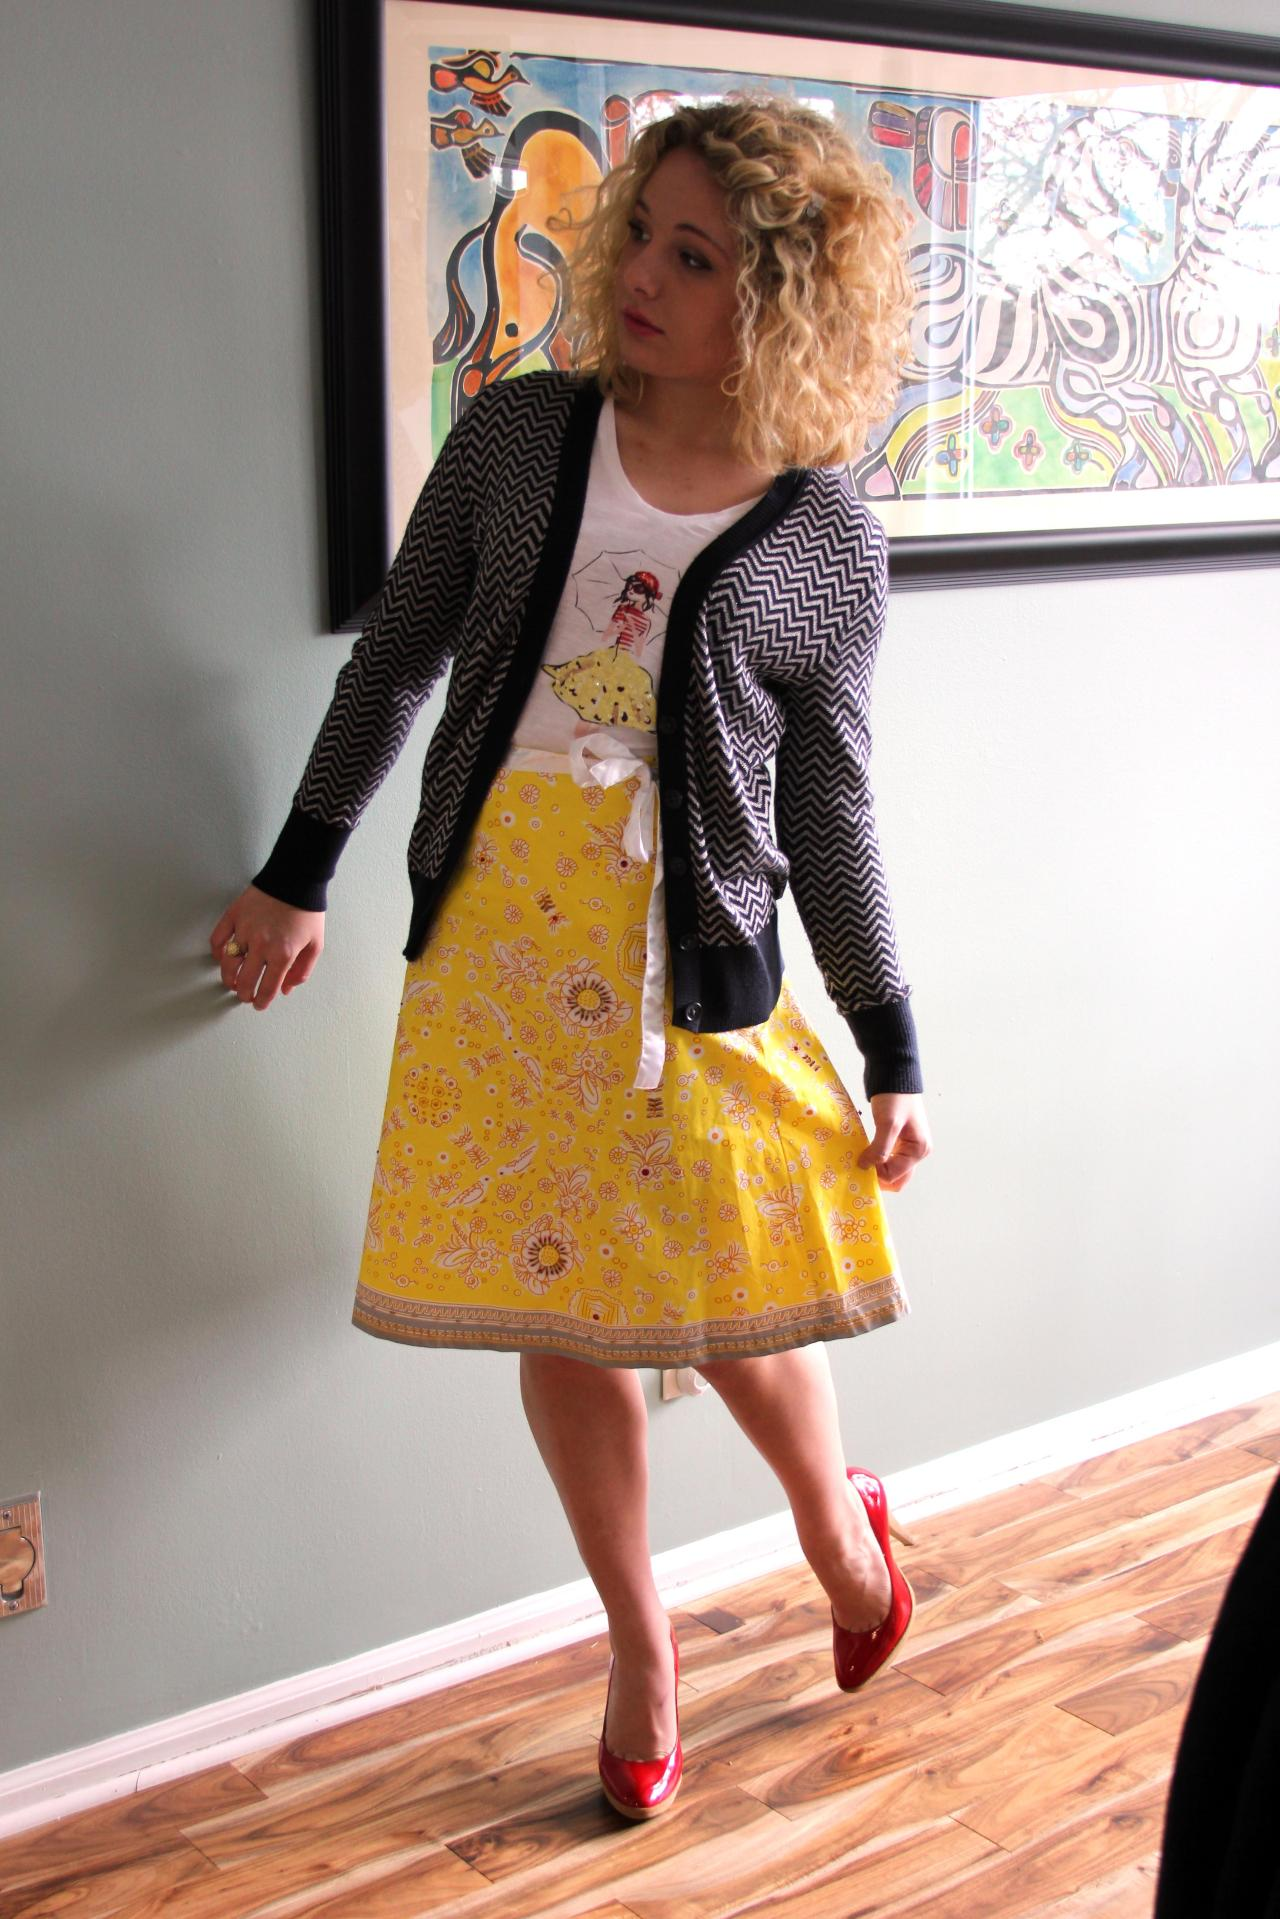 Cardigan: Banana Republic, Shops of Grand River (Leeds, AL)Shirt: The Loft, Shops of Grand River (Leed, AL)Skirt: JCrewHeels: Nine West